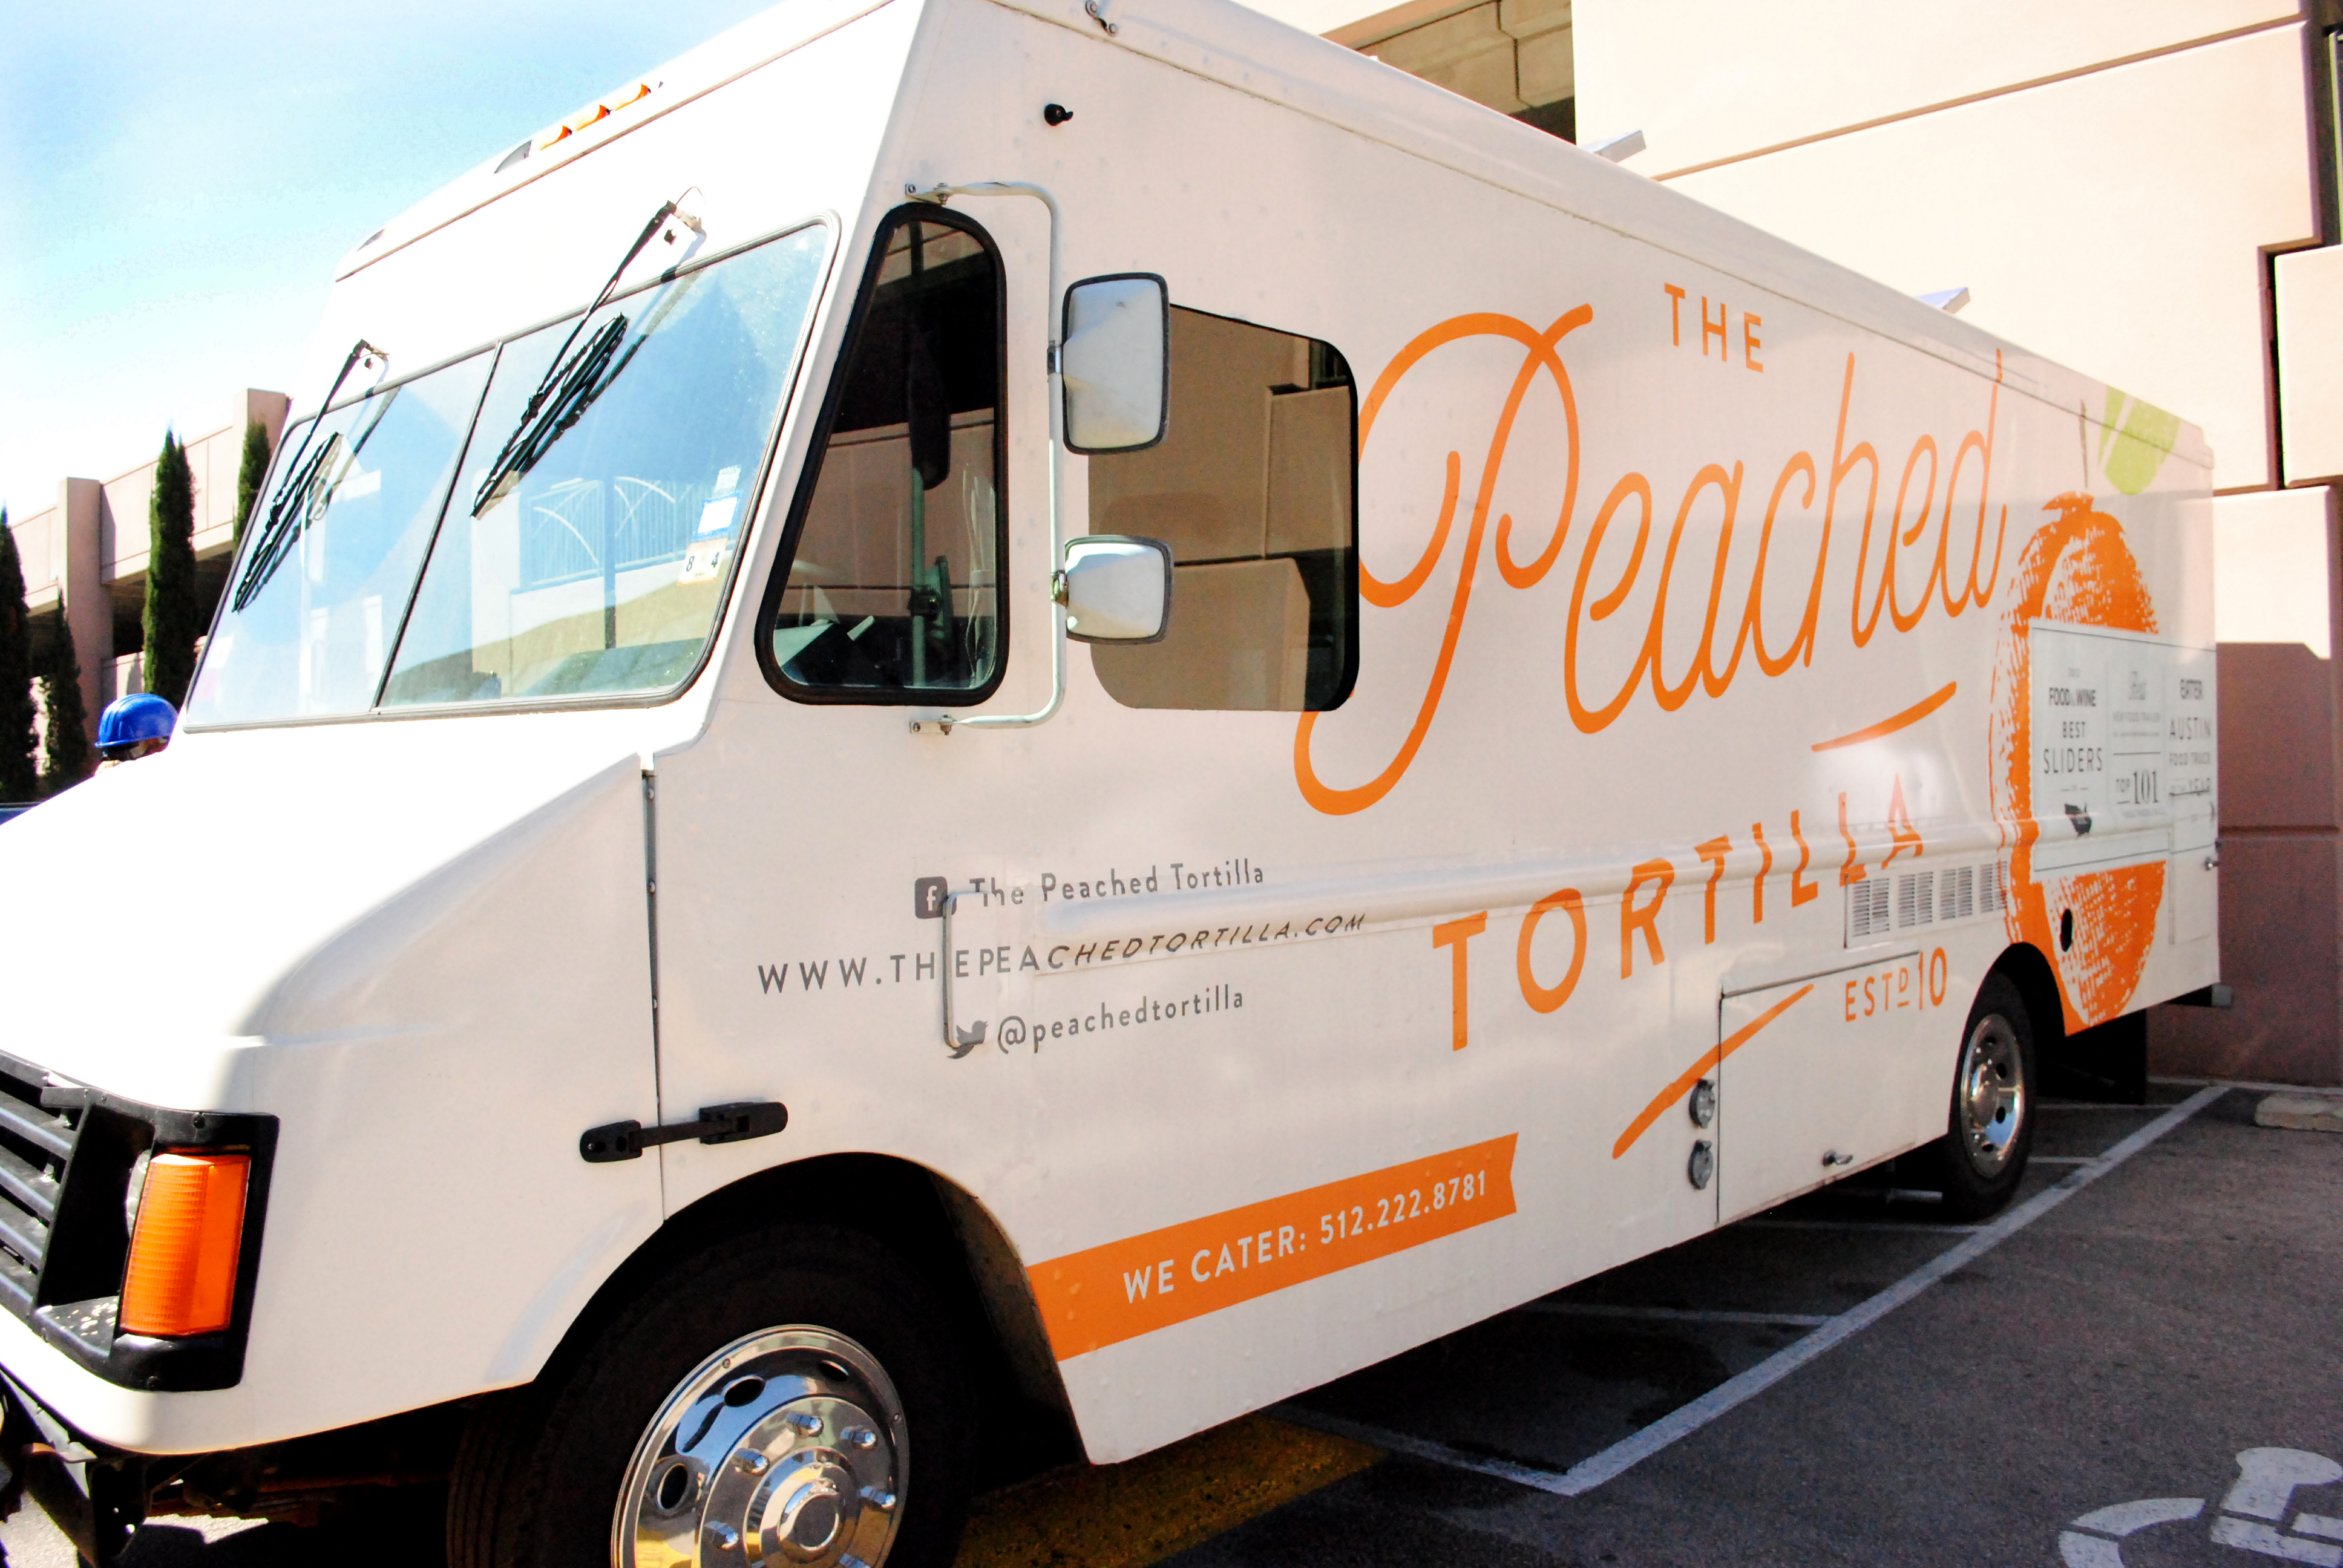 The Peached Tortilla serving up Asian-southern fusion tacos and sliders at lunchtime. Since the truck opened in 2010, it's been consistently voted one of the best food trailers in Austin and the country. (2011- Eater Austin Best Food Truck of the Year, 2012 Food & Wine Best Sliders in the US//2012 Austin Food Blogger Alliance Best New Food Trailer, 2013 The Daily Meal Top 101 Food Trucks in the US.)